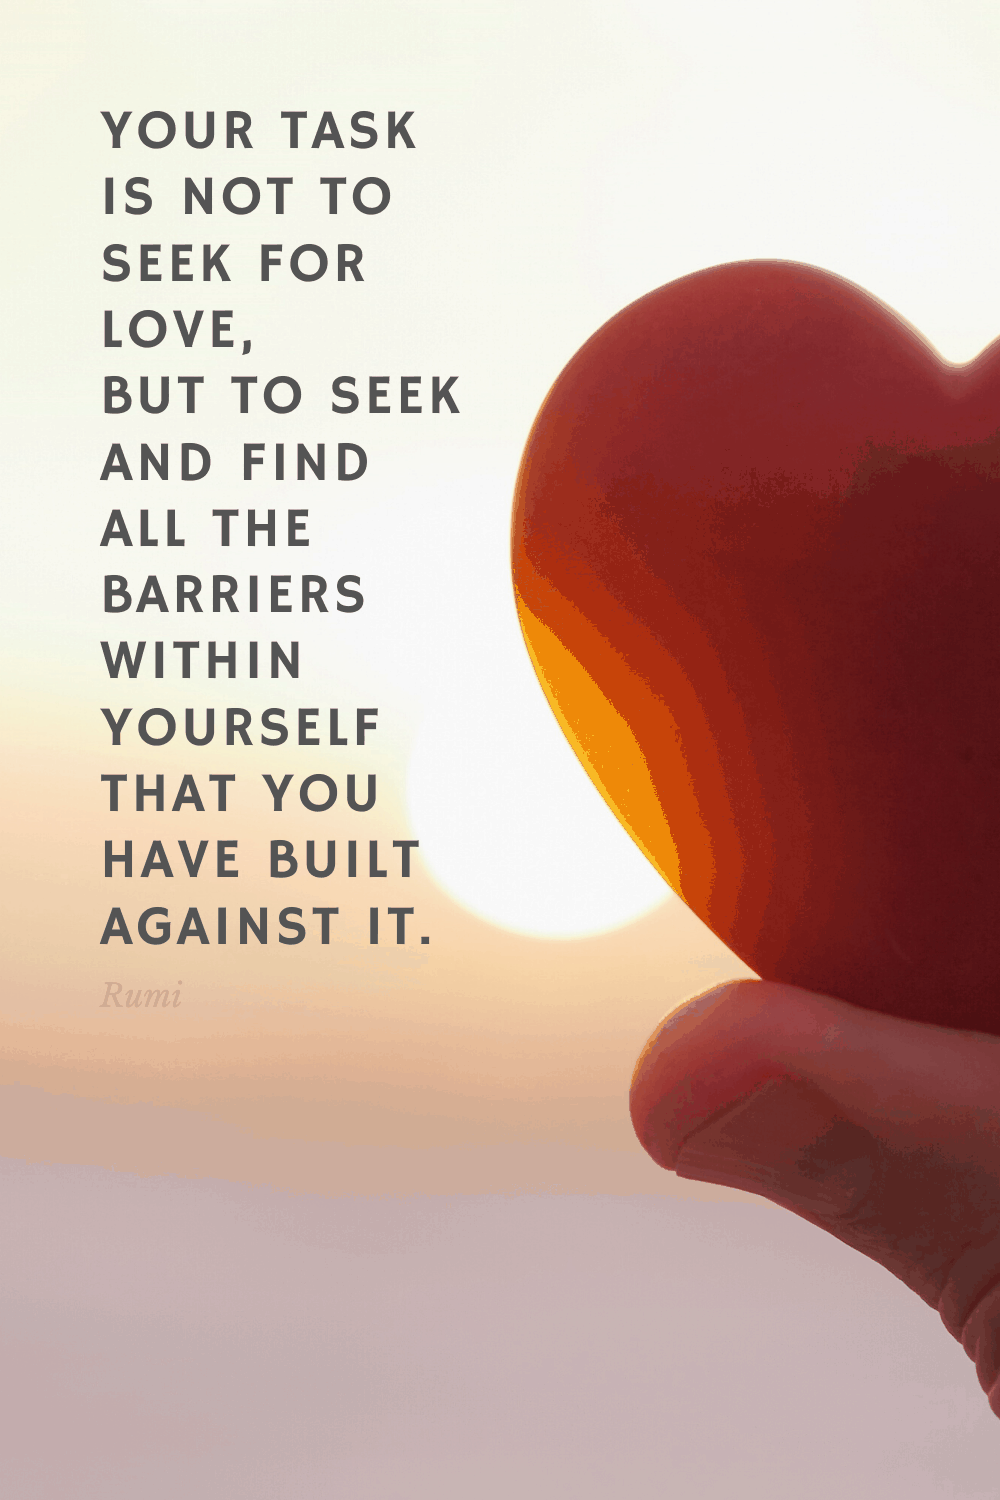 Find your barriers against love